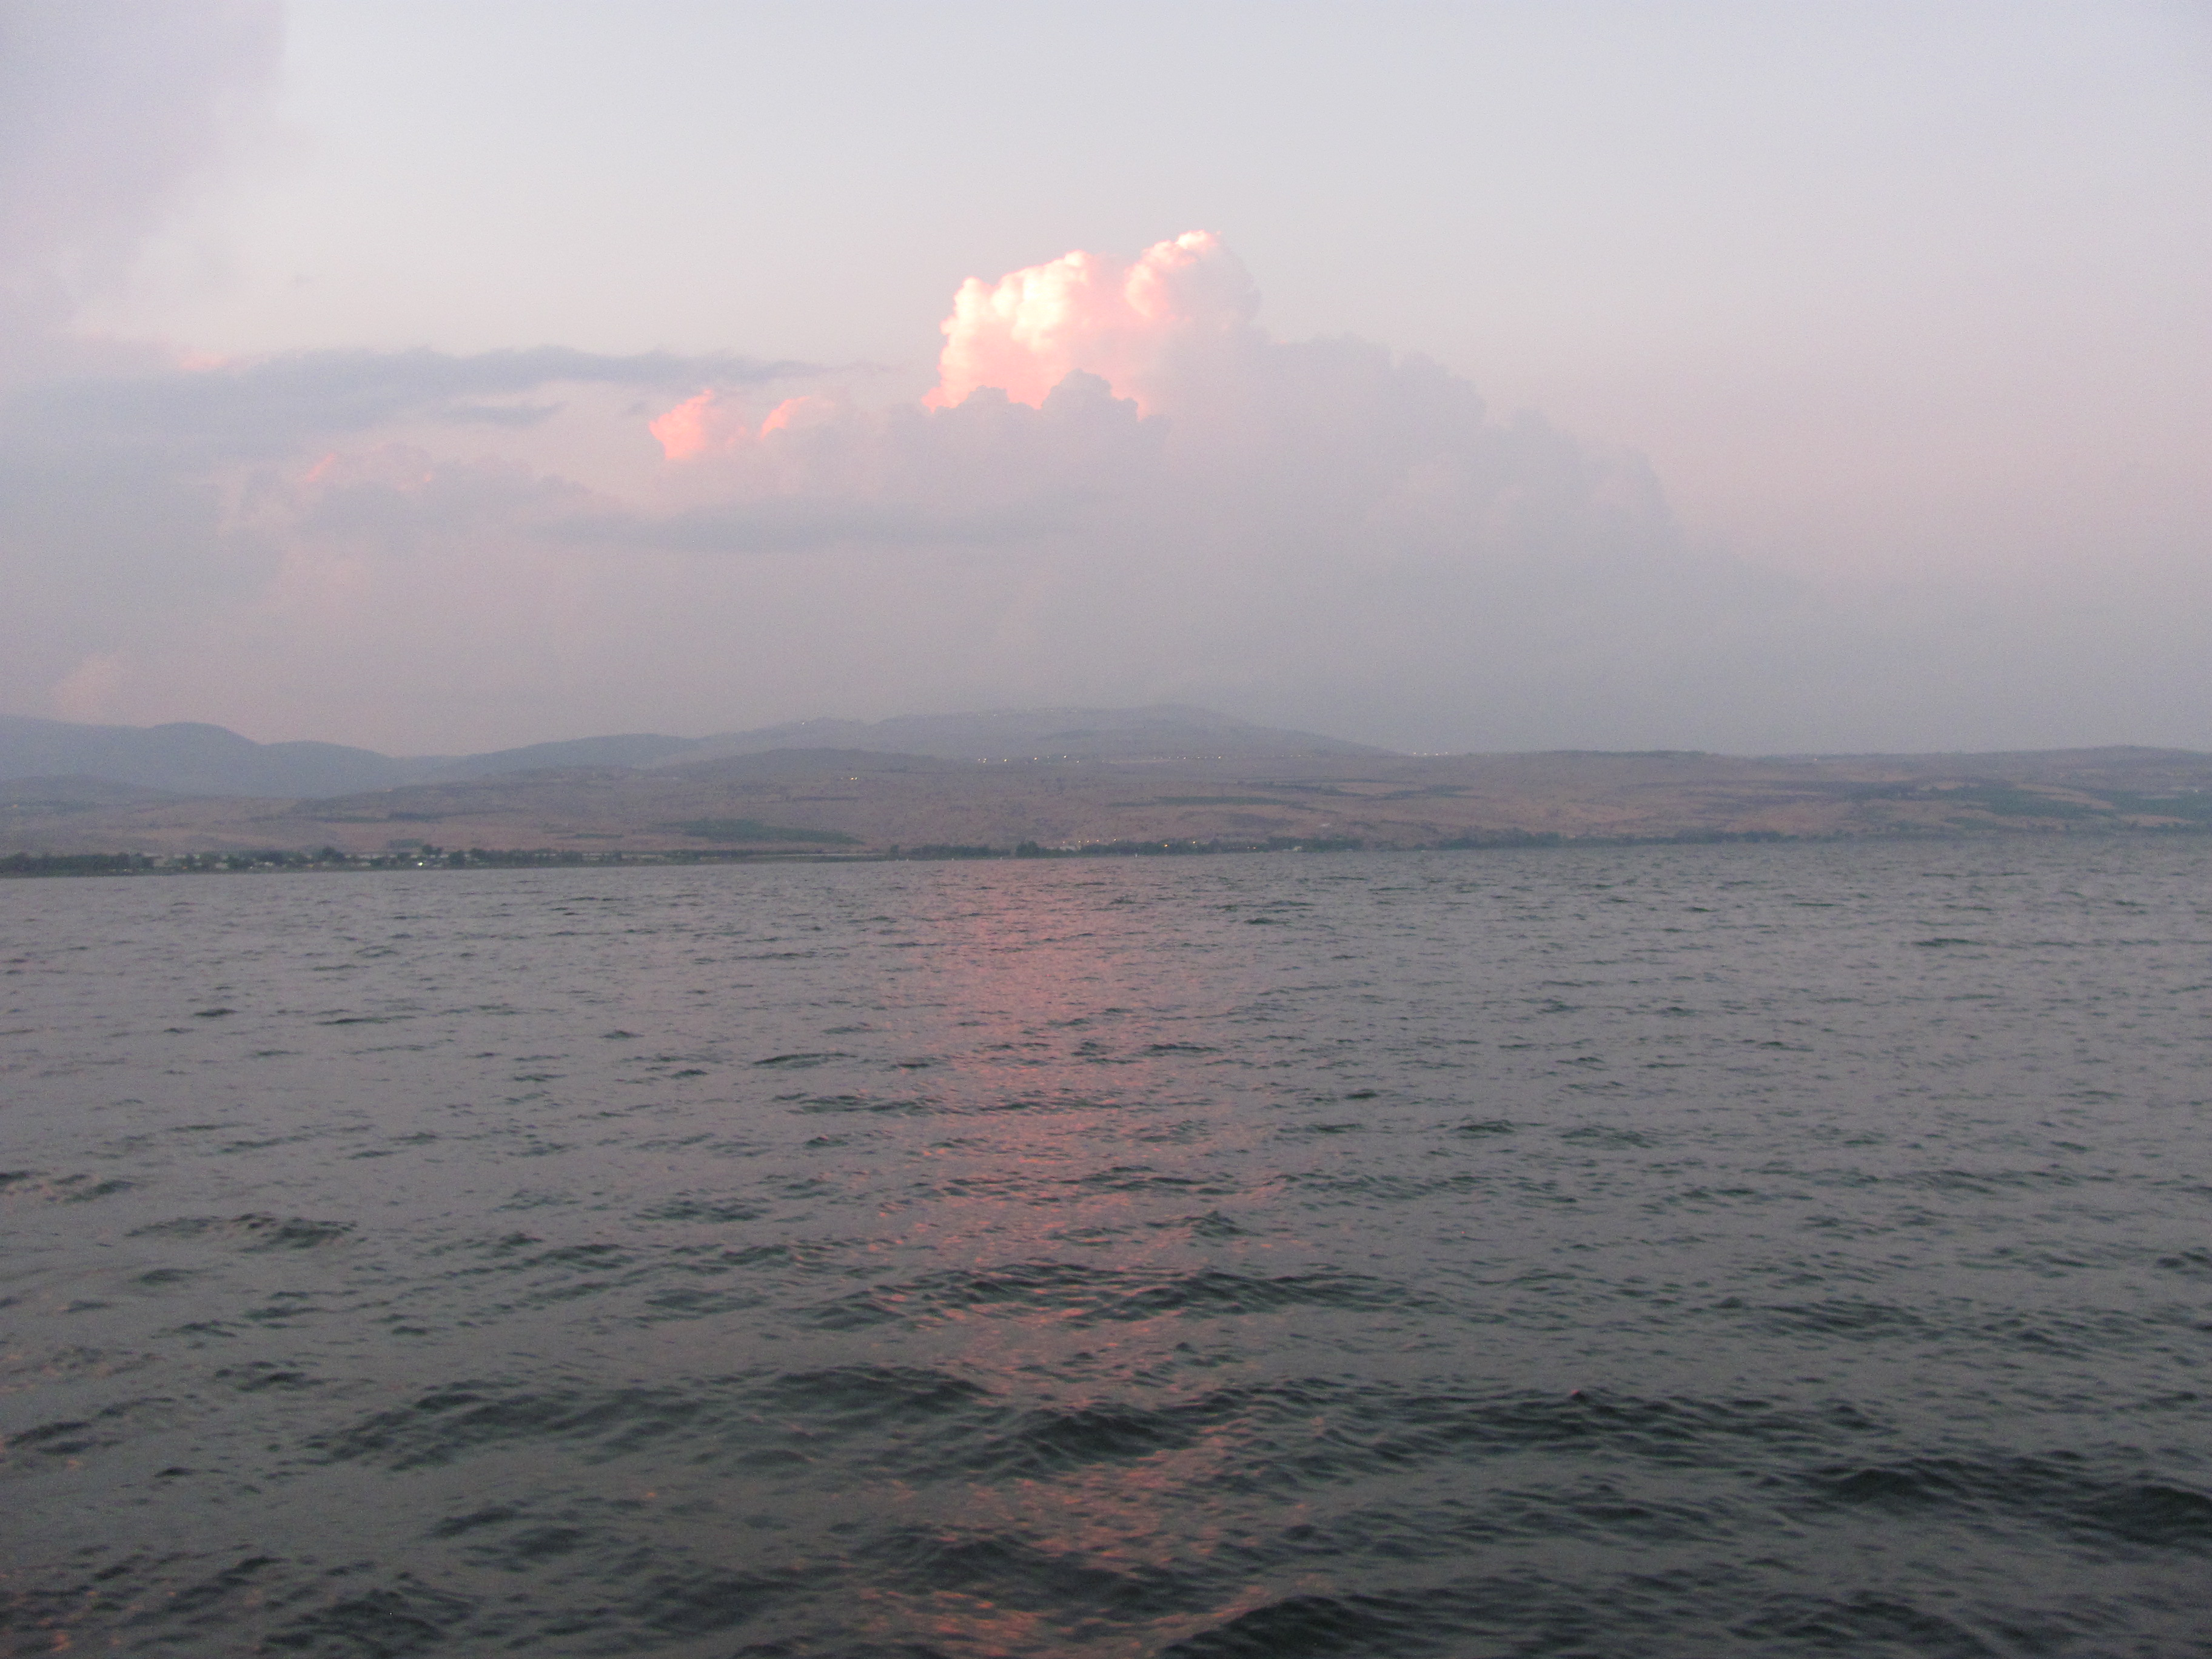 Sunset on the Galilee